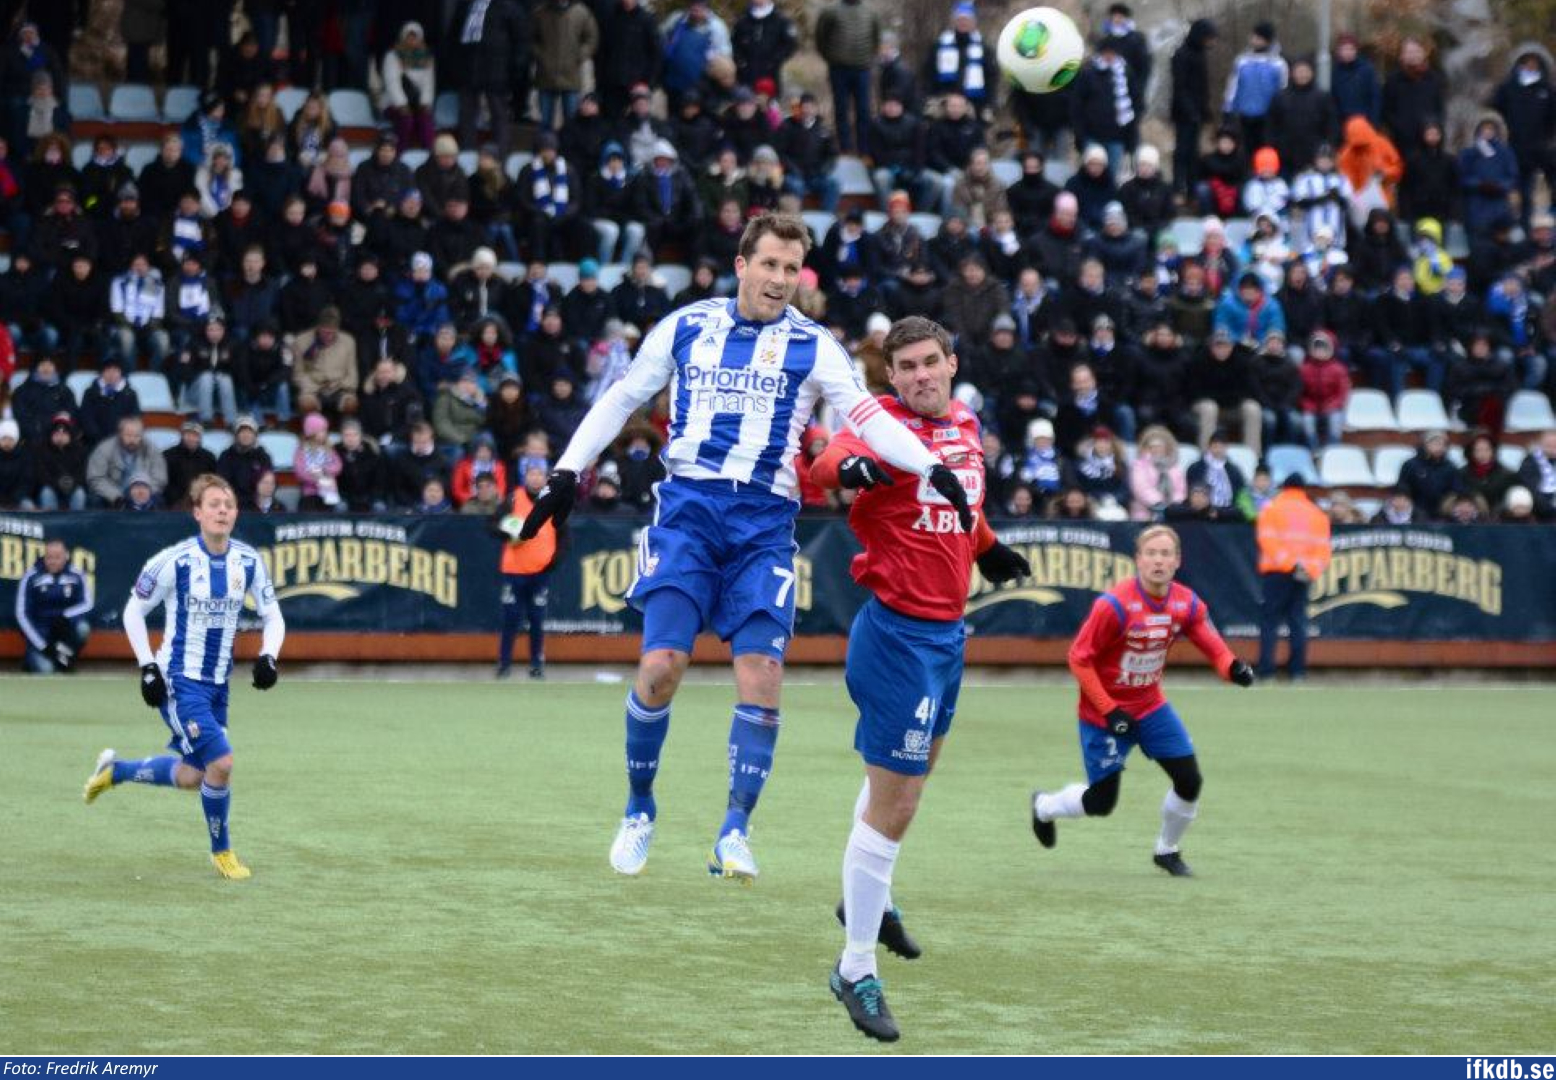 Saturday 23rd of February 2013: IFK Göteborg – Örgryte IS 2–0